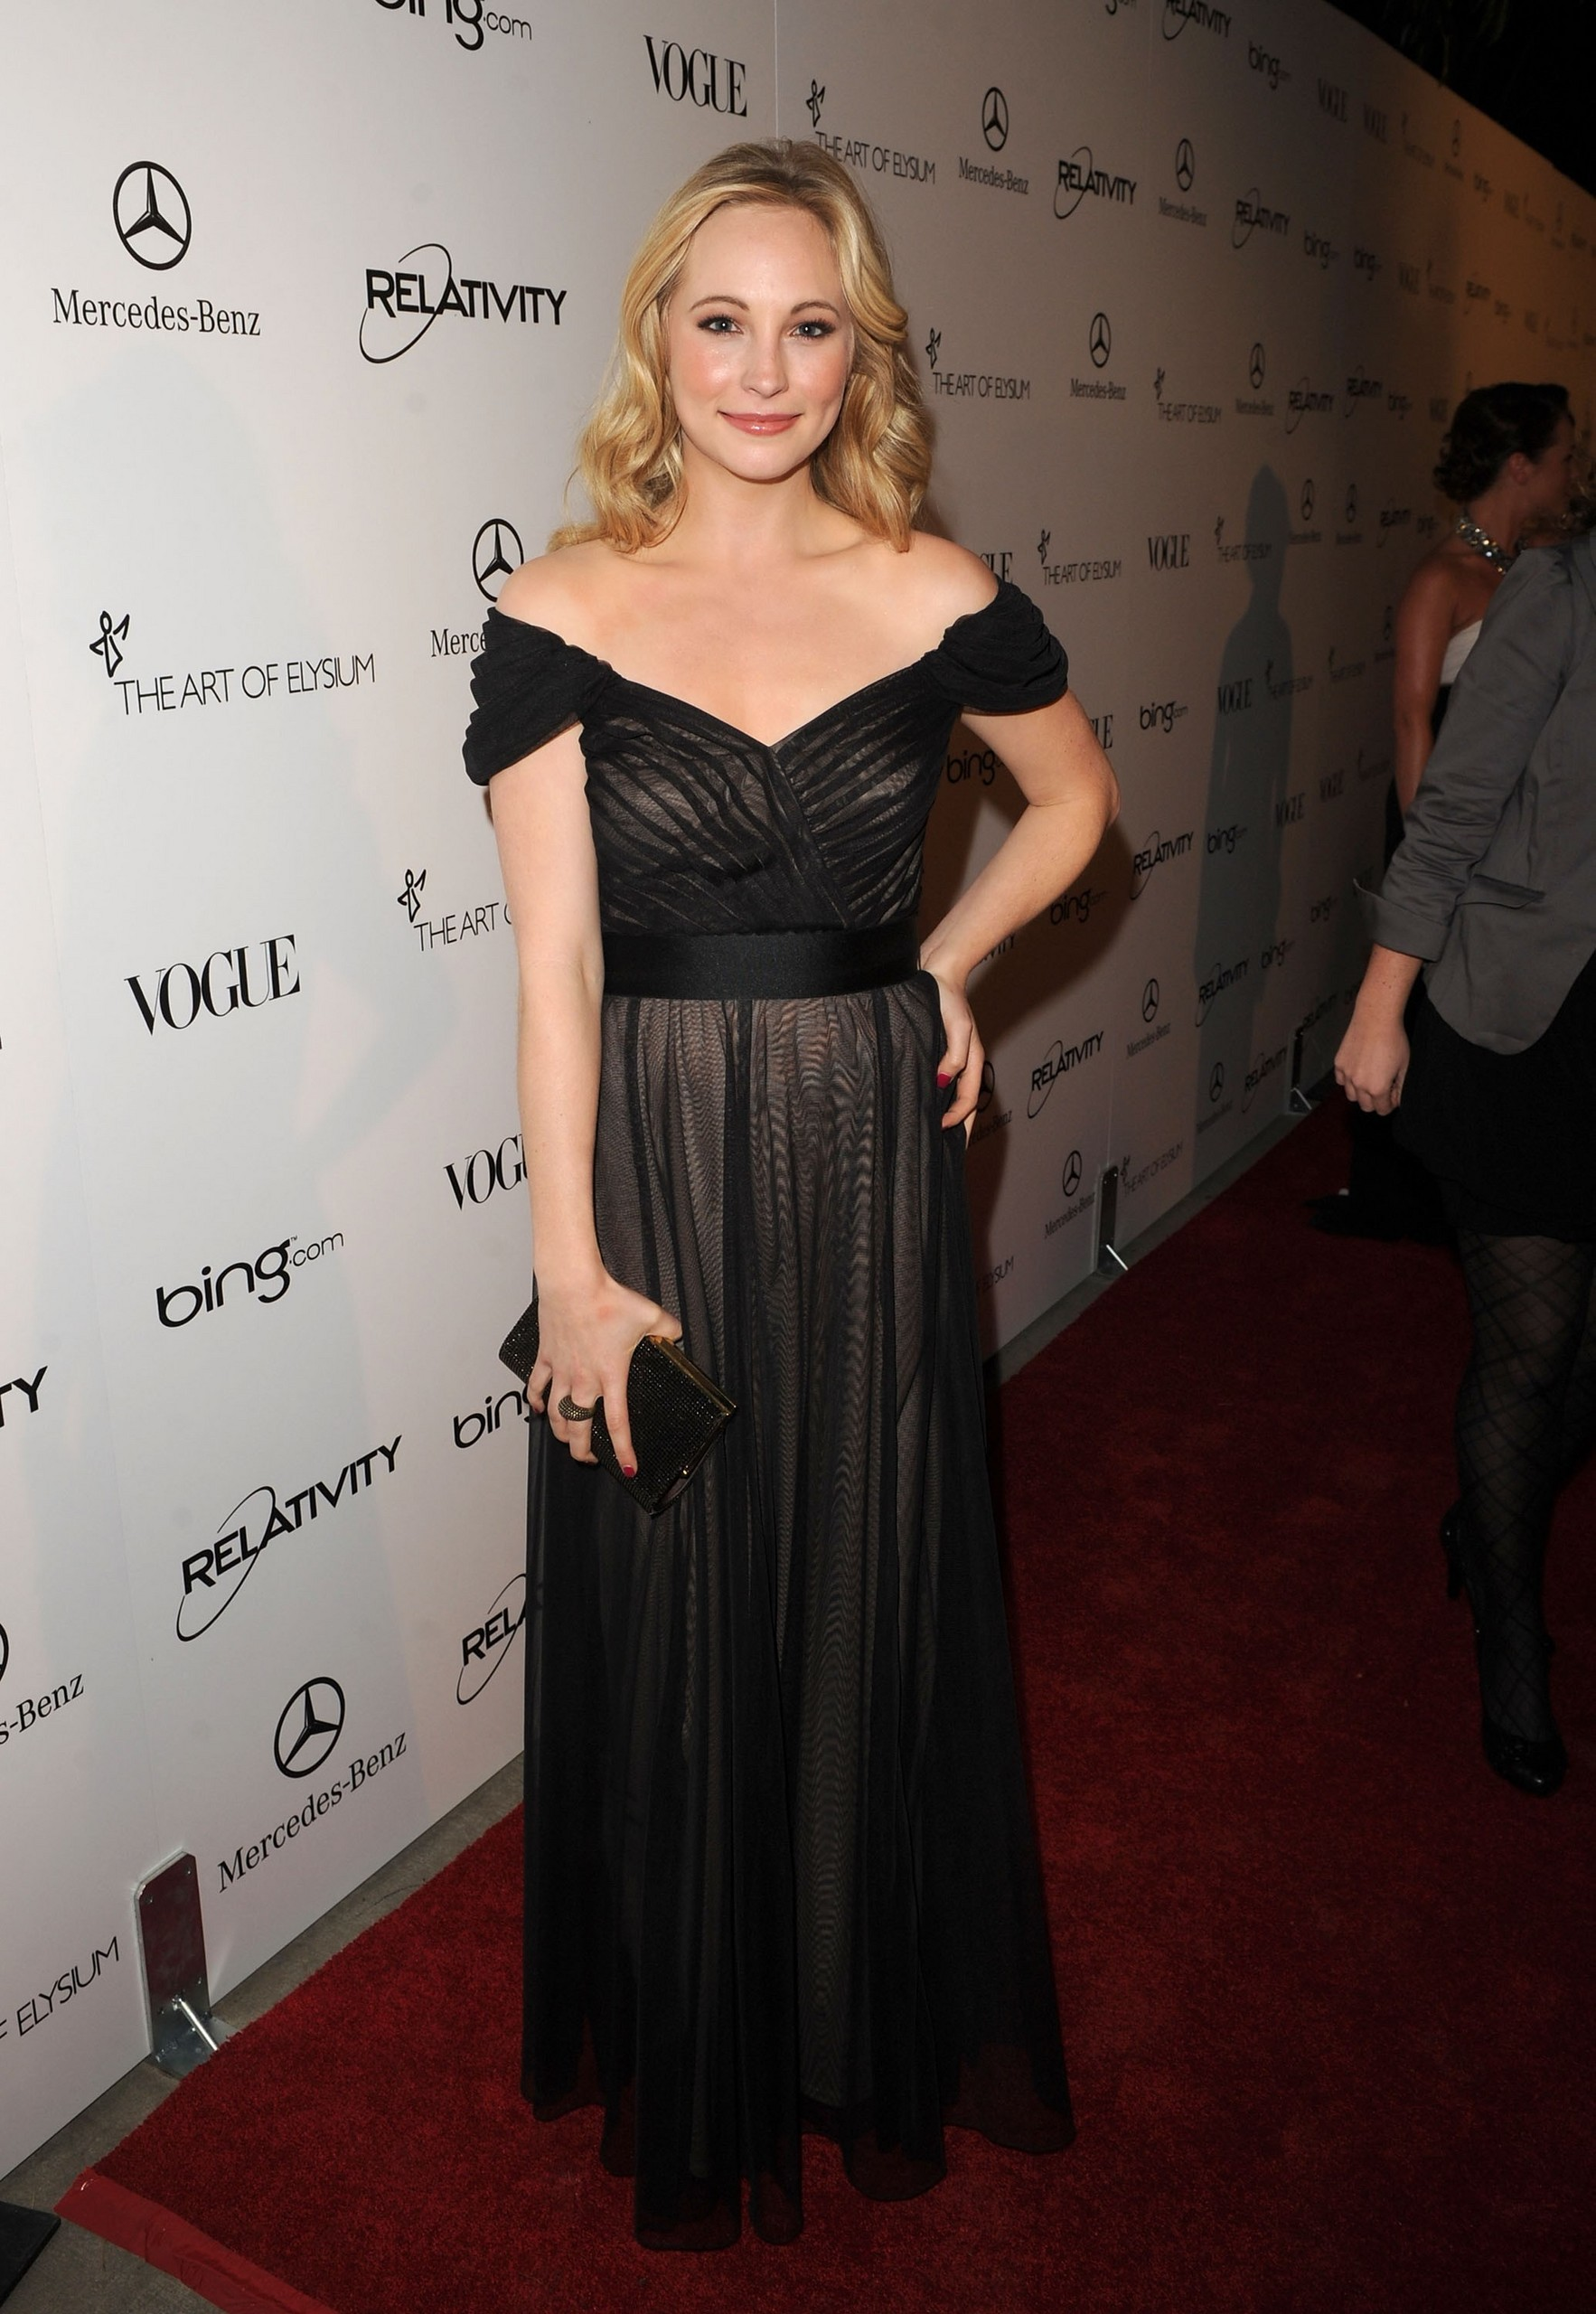 Candice Accola attends the 2011 Art of Elysium 'Heaven' Gala. (HQ) - the-vampire-diaries-tv-show photo